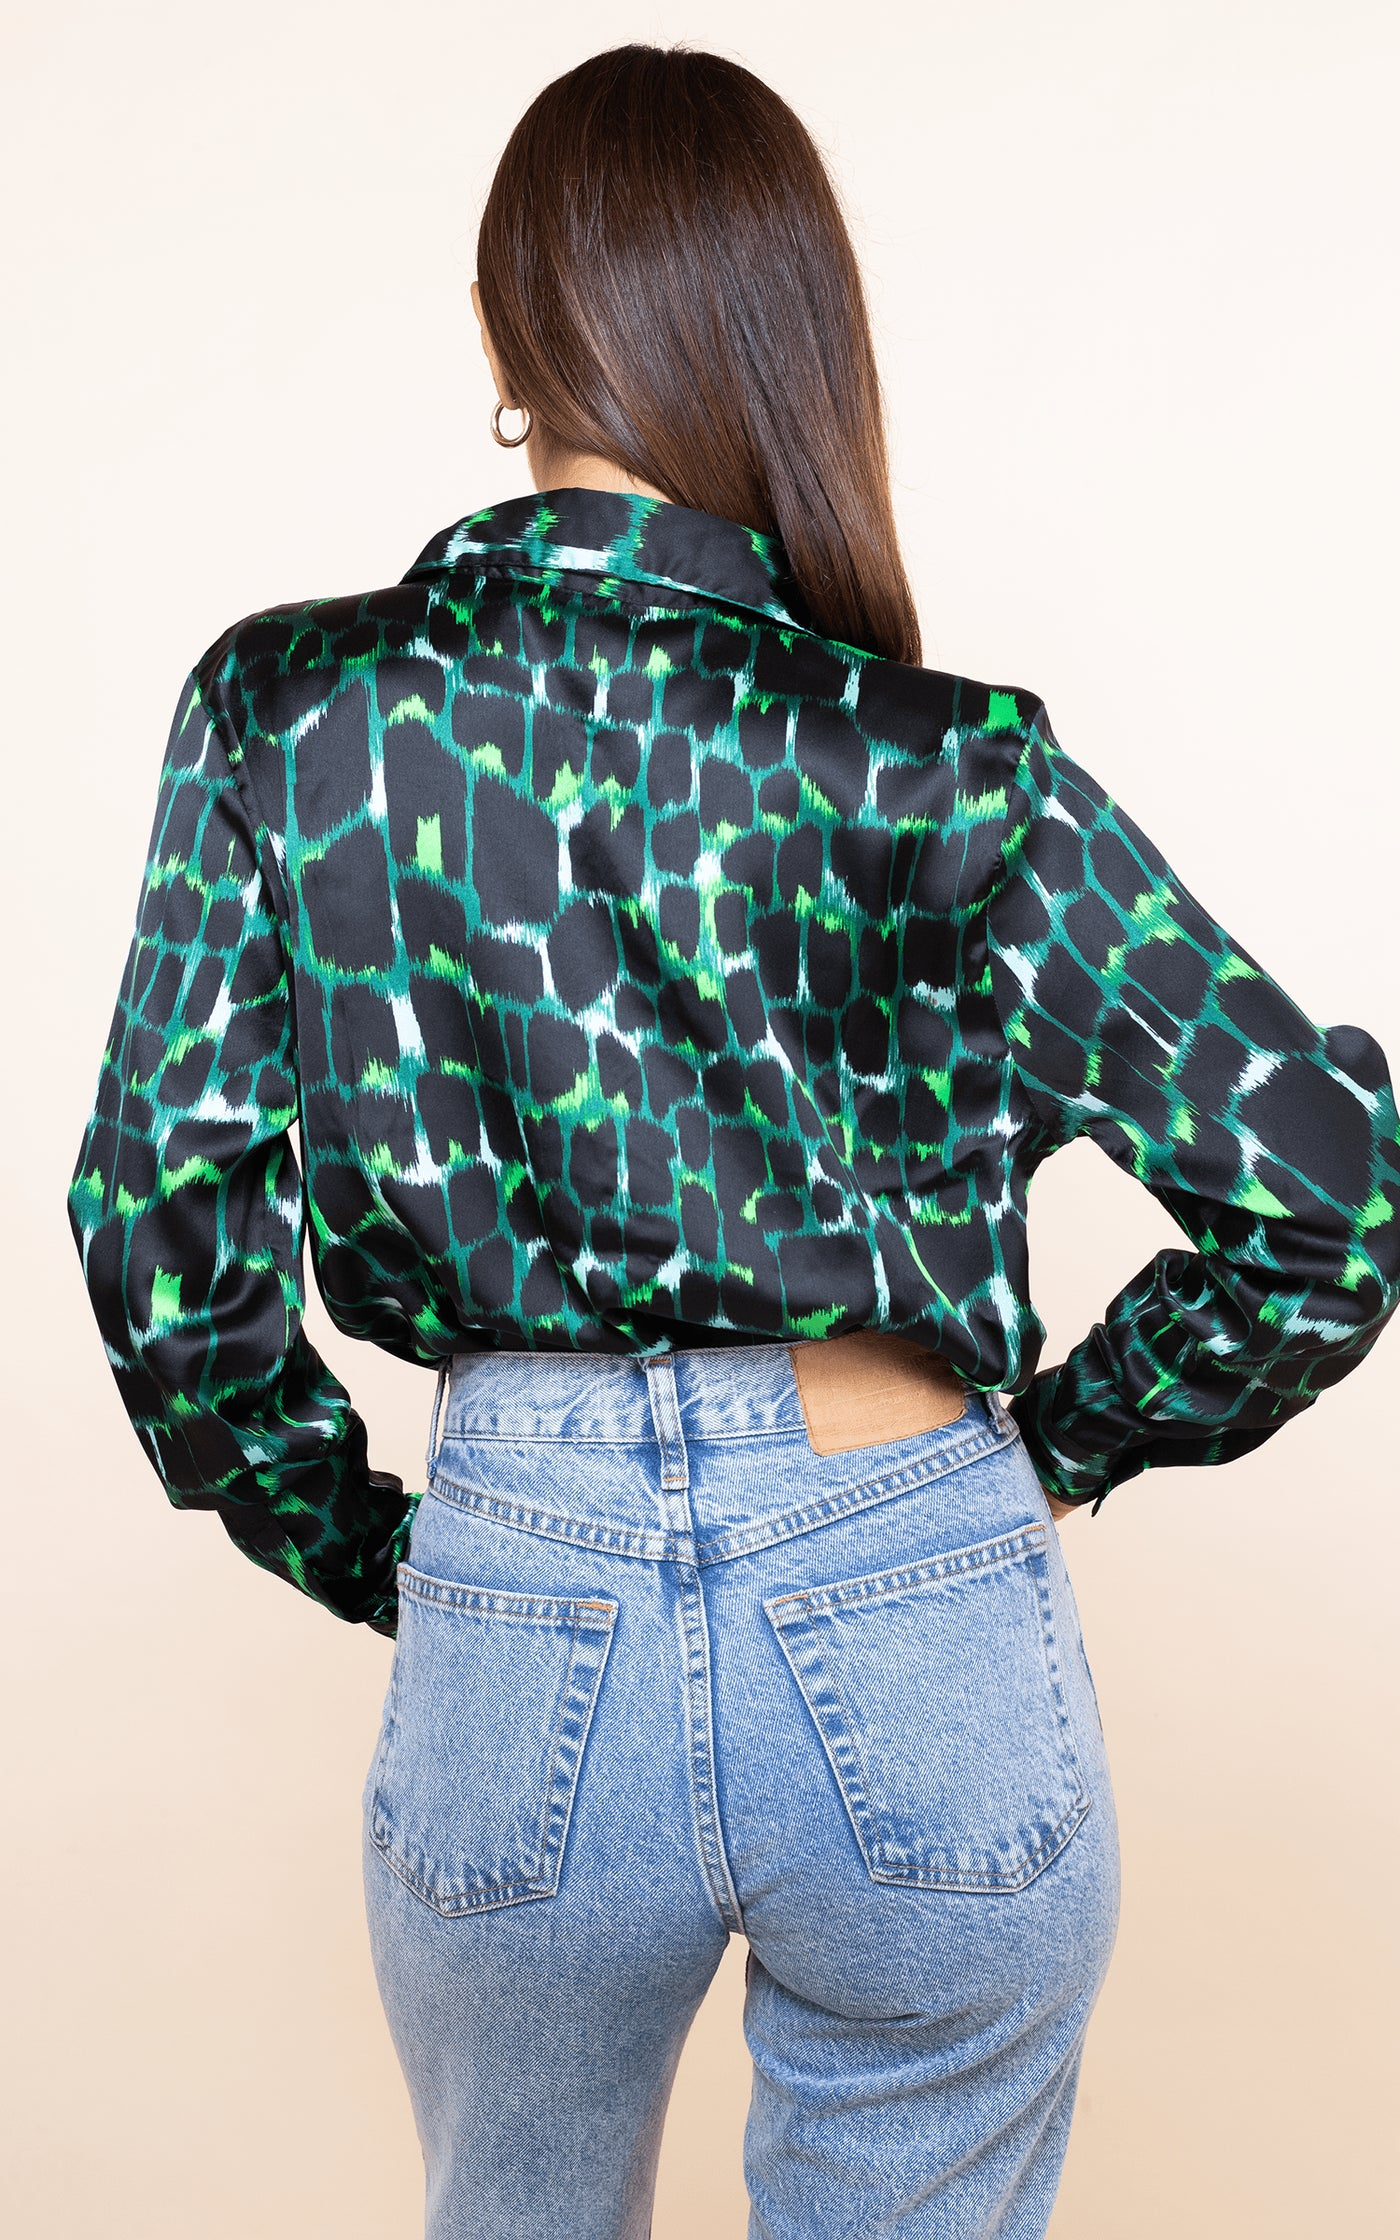 Dancing Leopard model faces backwards with hand on hip wearing San Diego Shirt in green alligator print with jeans